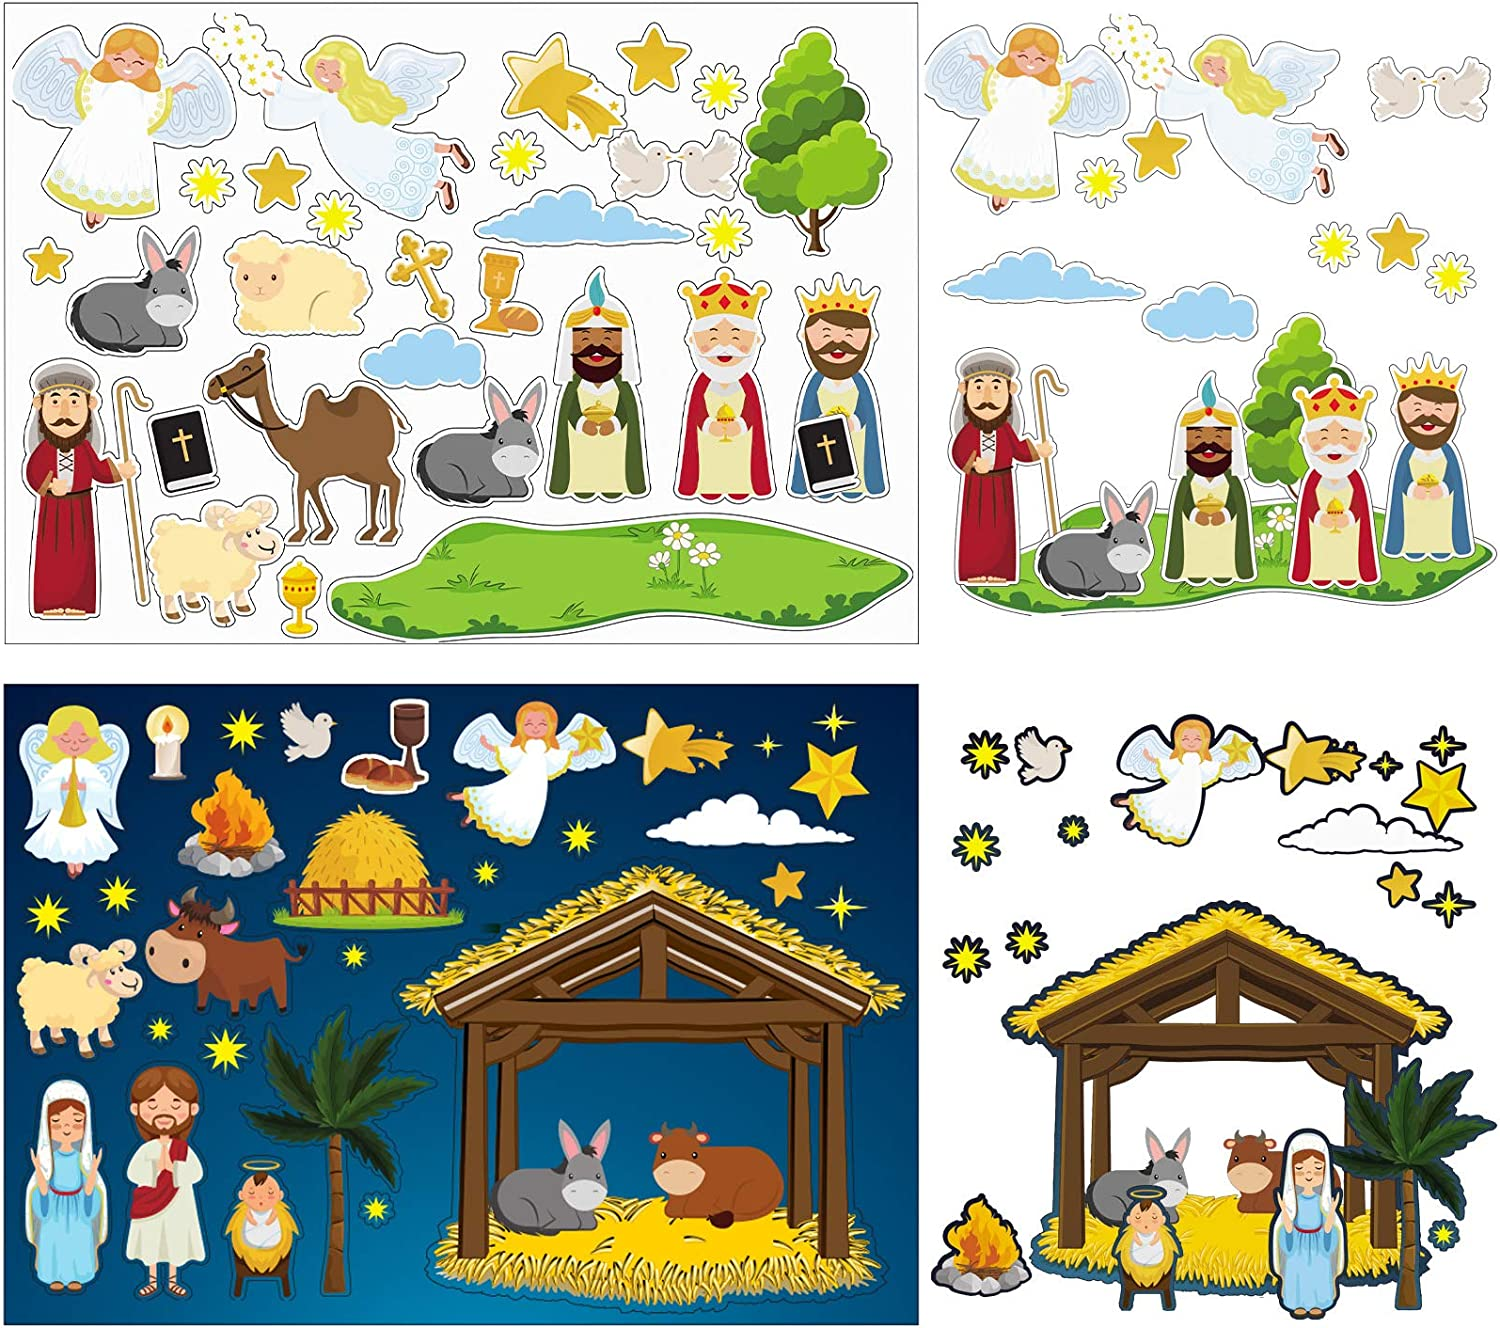 Outus 30 Sheets Make a Nativity Scene Stickers Assorted Christmas Mix and Match Stickers Nativity Scene Party Game for Birthday Party Supplies Xmas Decoration